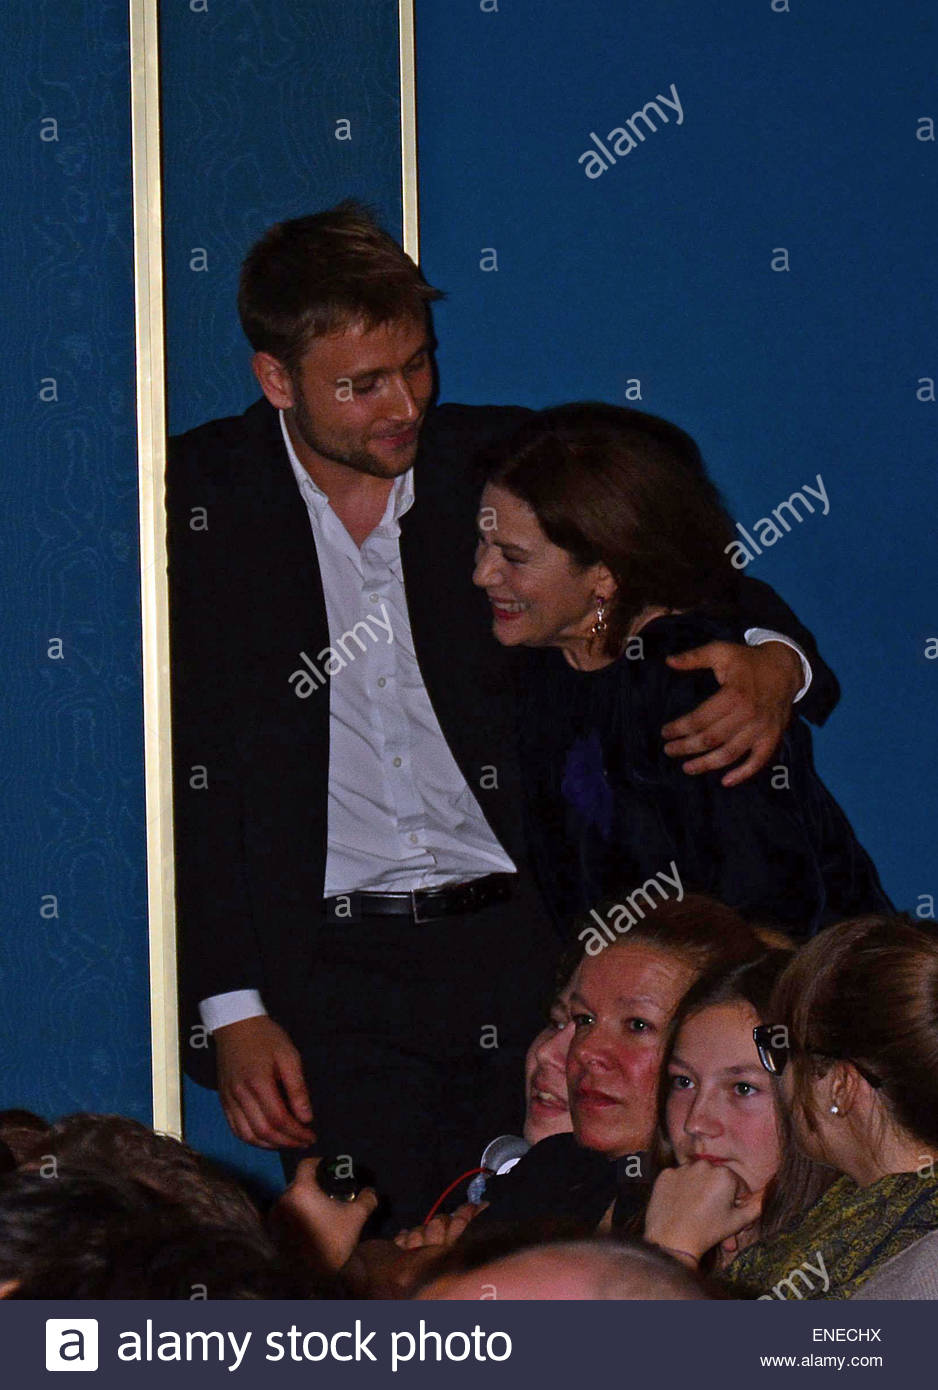 Picture of max riemelt - Hannelore Elsner Max Riemelt At The Premiere Auf Das Leben At Colosseum Movie Theatre Berlin Germany 29 10 2014 Featuring Hannelore Elsner Max Riemelt